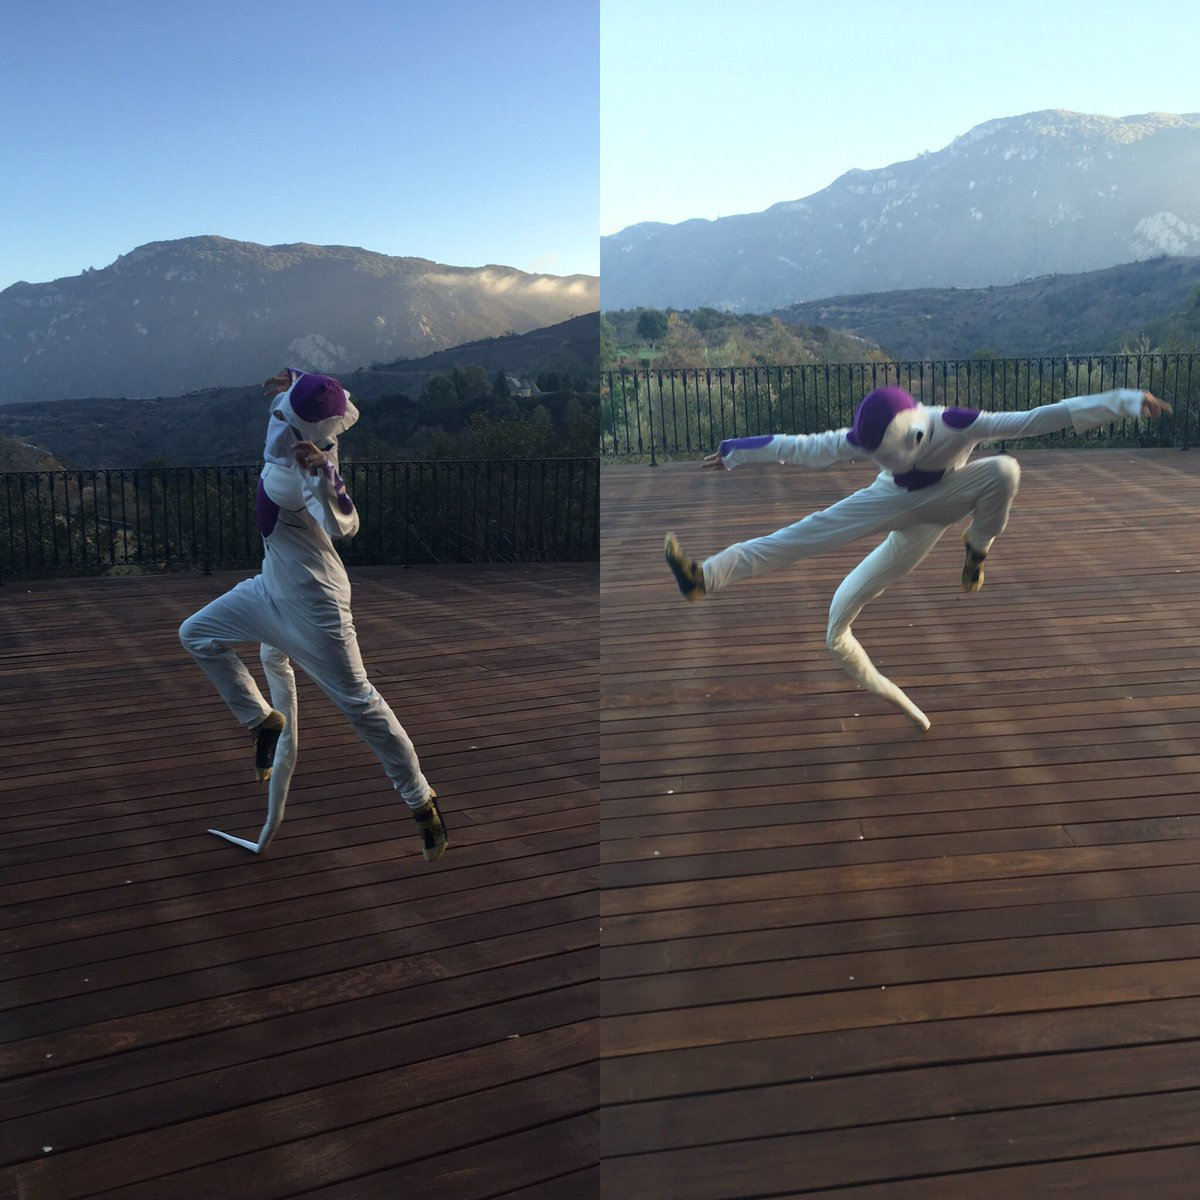 My son is Lord Frieza